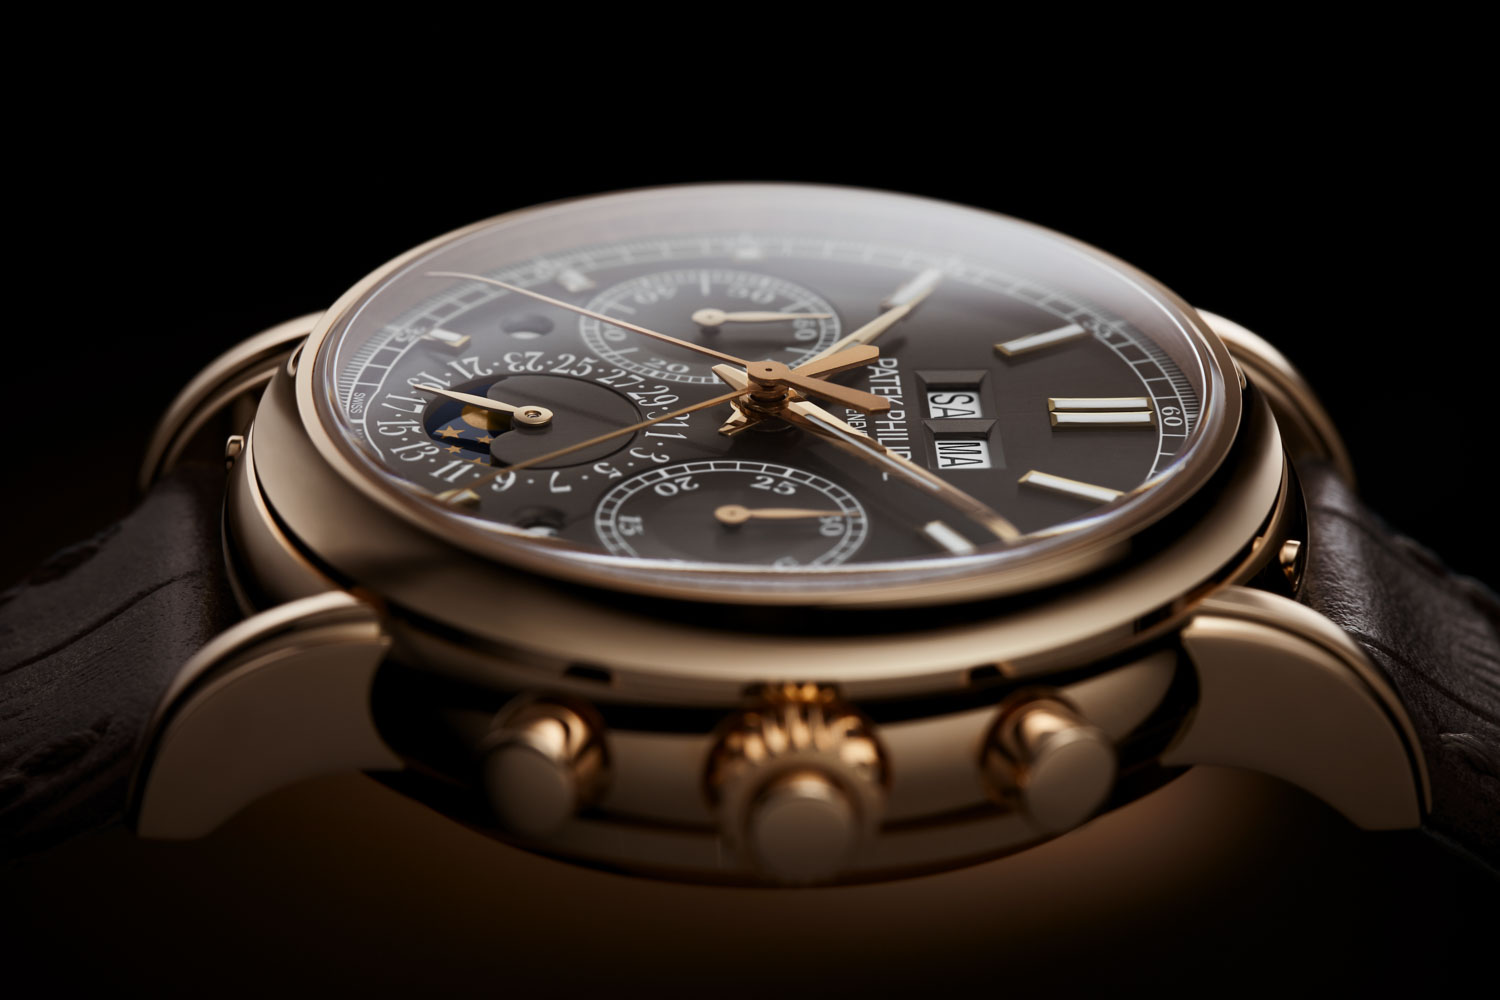 Patek Philippe Reference 5204R-011 Split-Seconds Chronograph and Perpetual Calendar in rose gold with slate gray dial